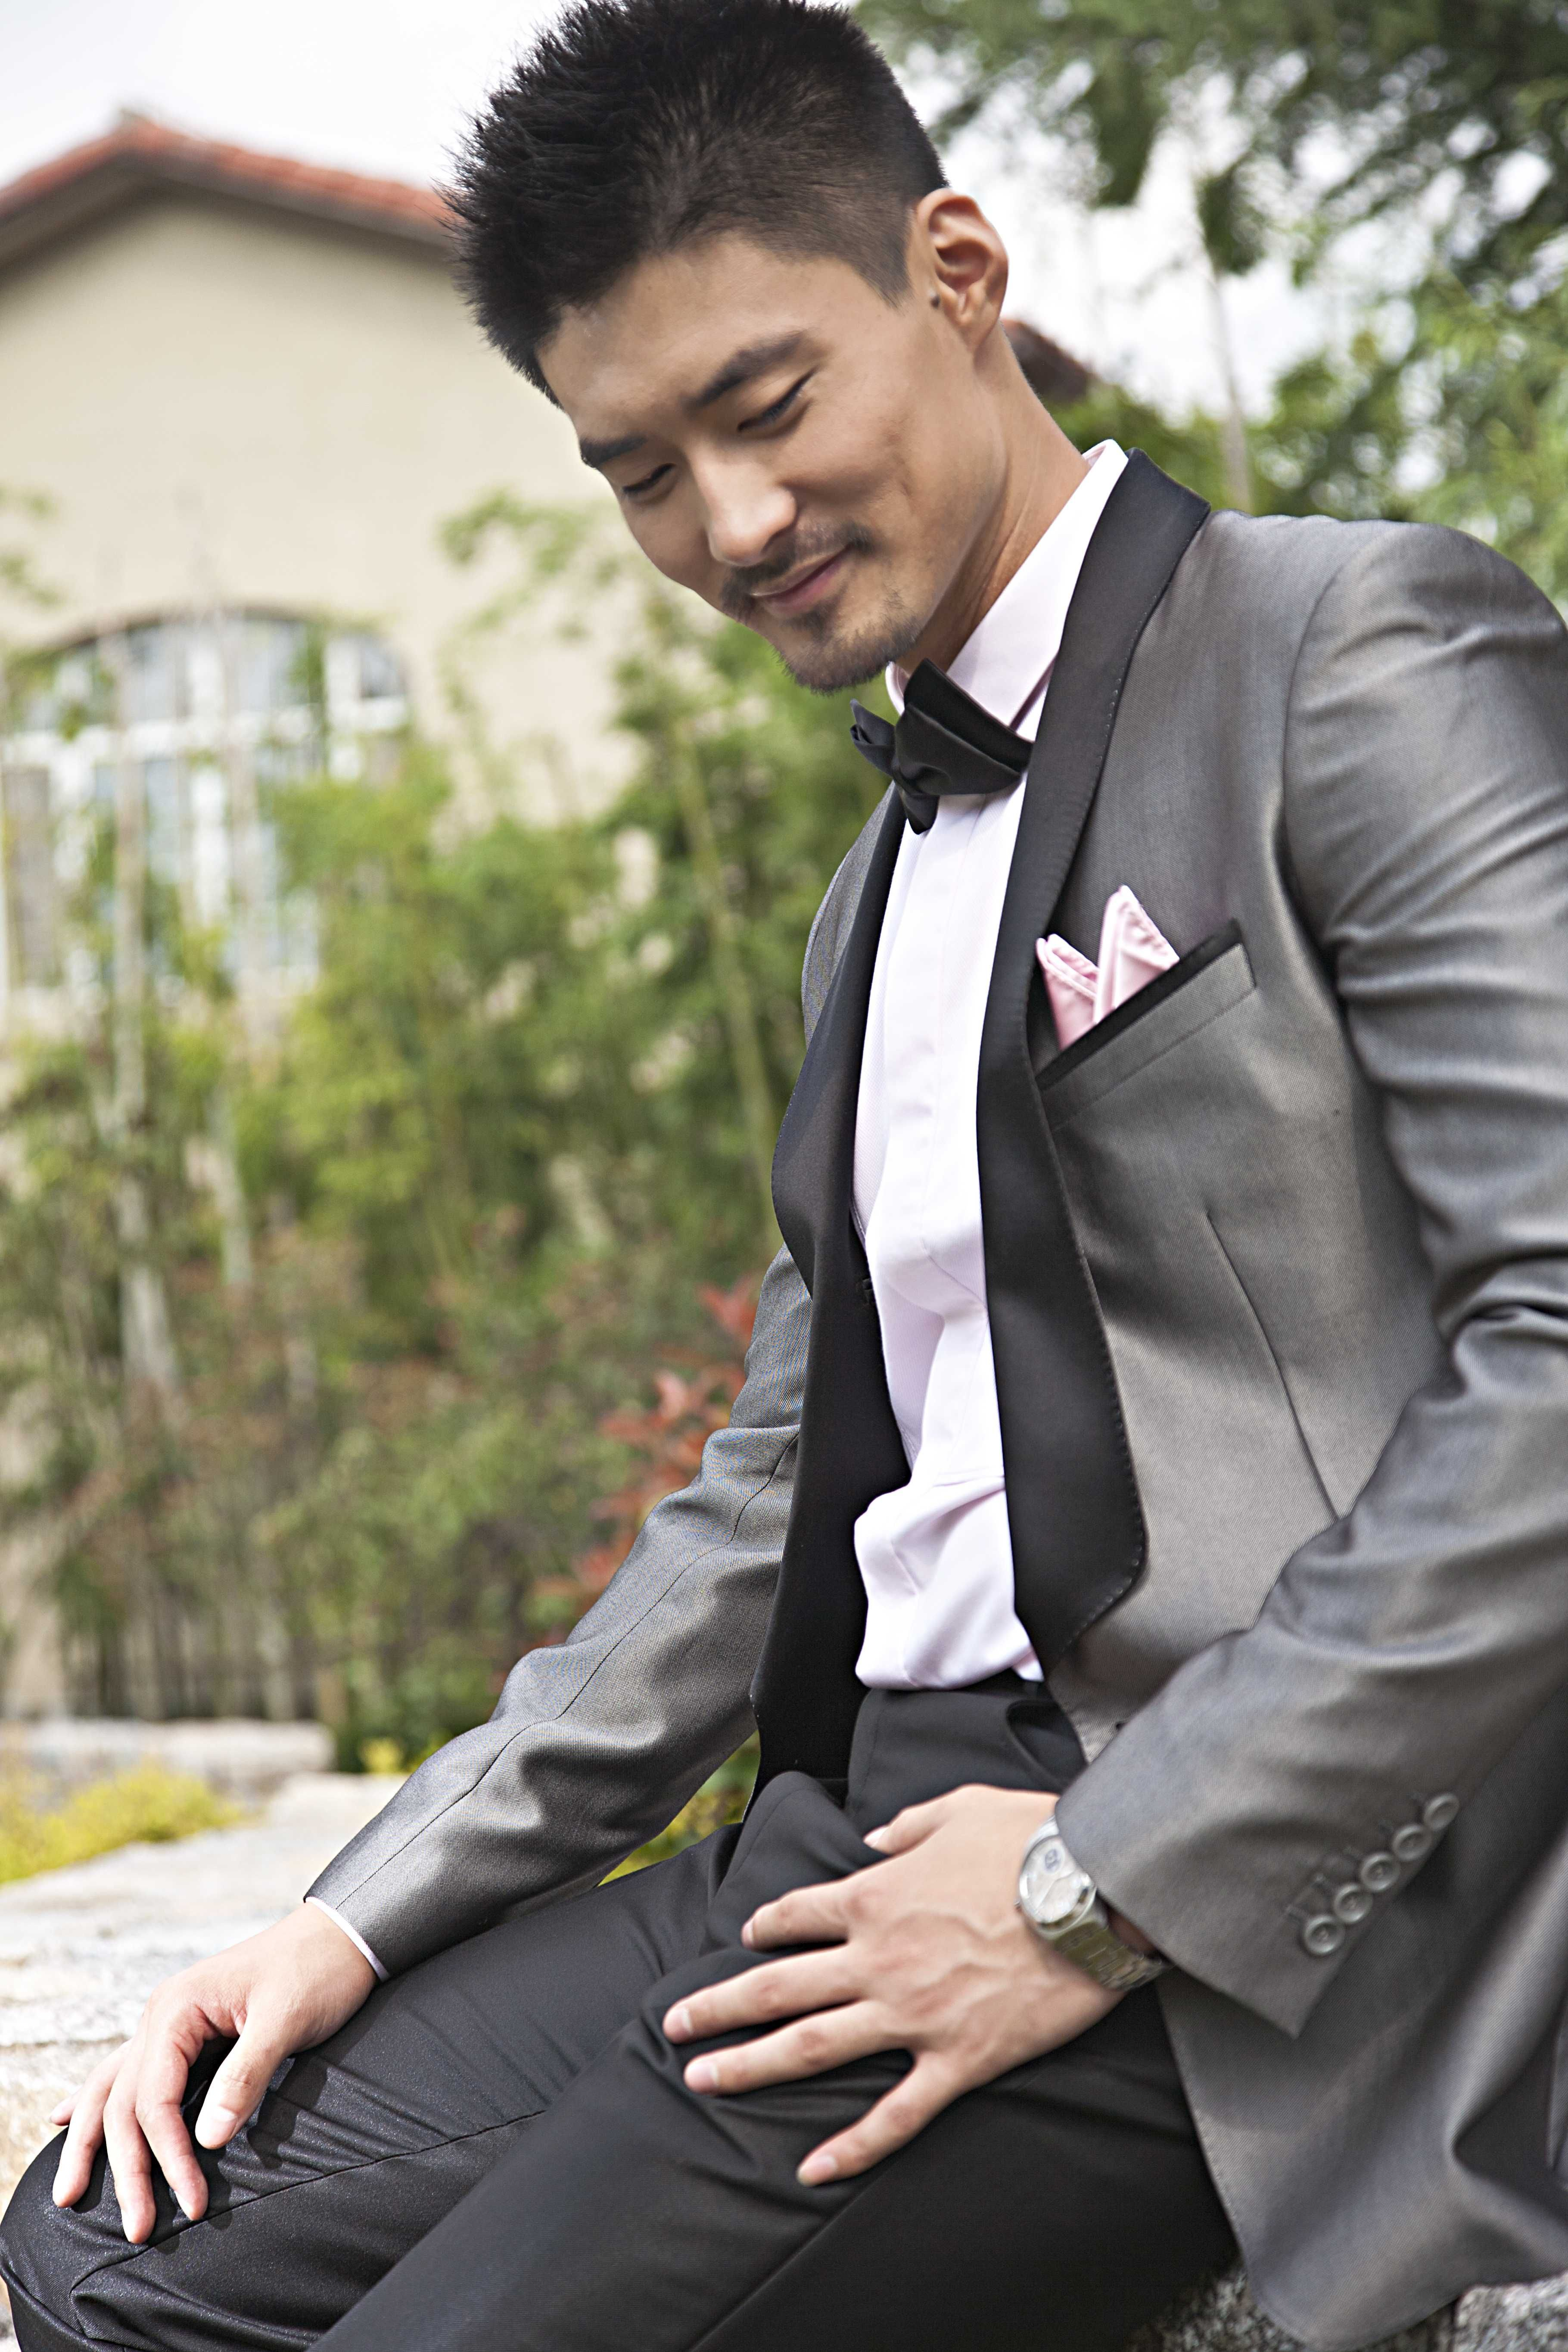 silver tuxedo | Made to measure suit | Pinterest